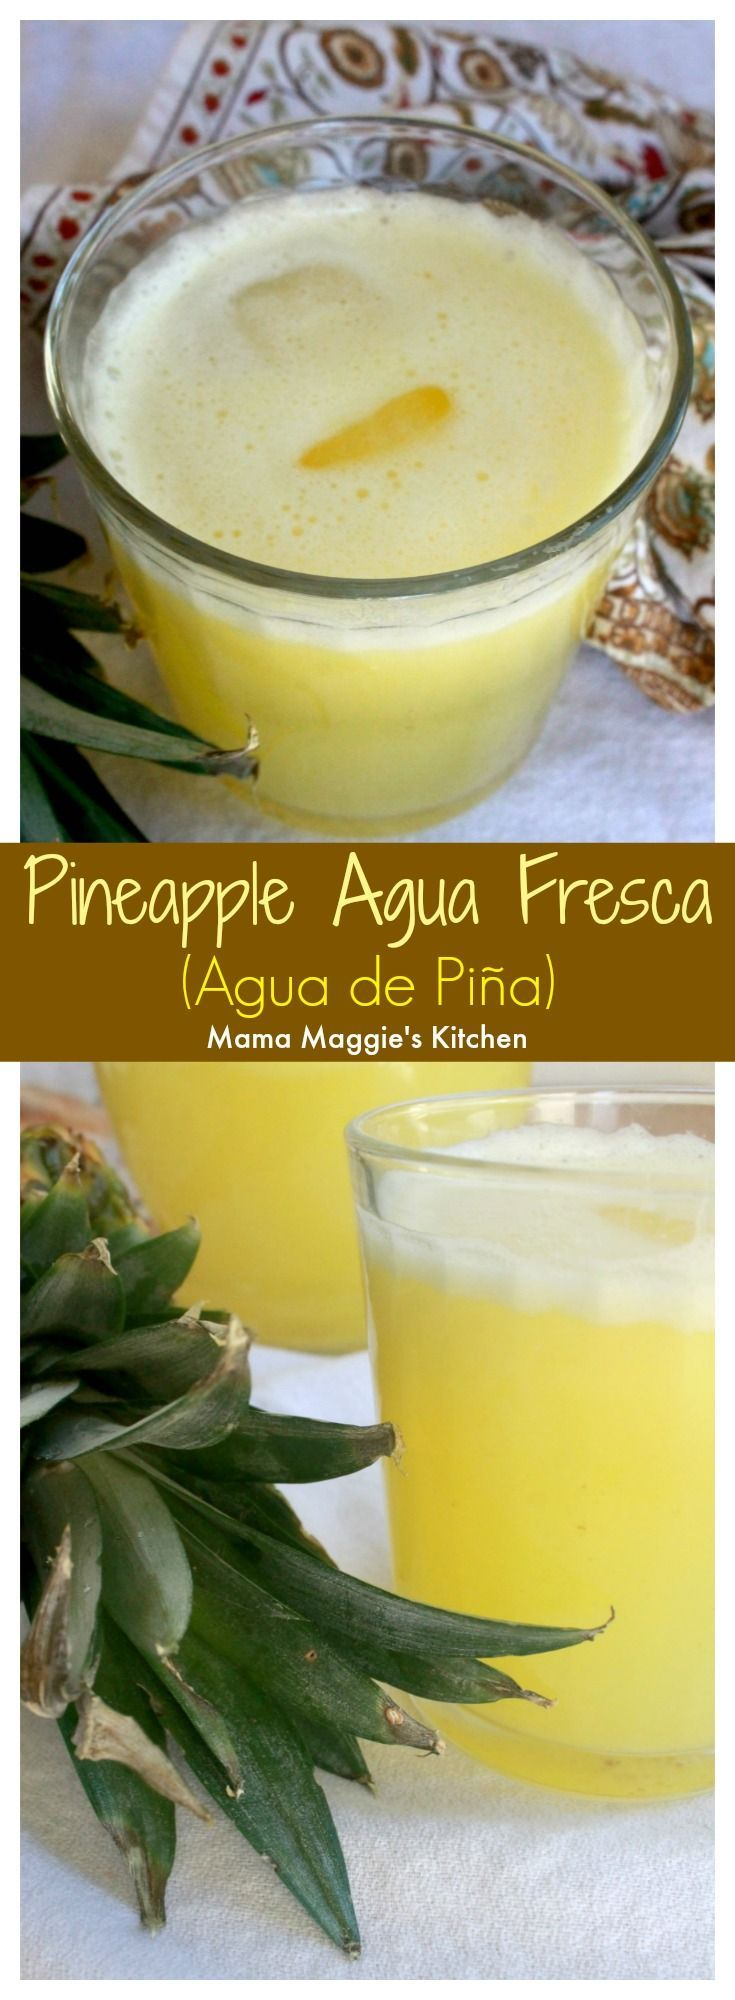 Pineapple Agua Fresca, or Agua de Piña, is a refreshing and light beverage from our friends in Mexico. Delicious and perfect during the warmer months. By Mama Maggie's Kitchen